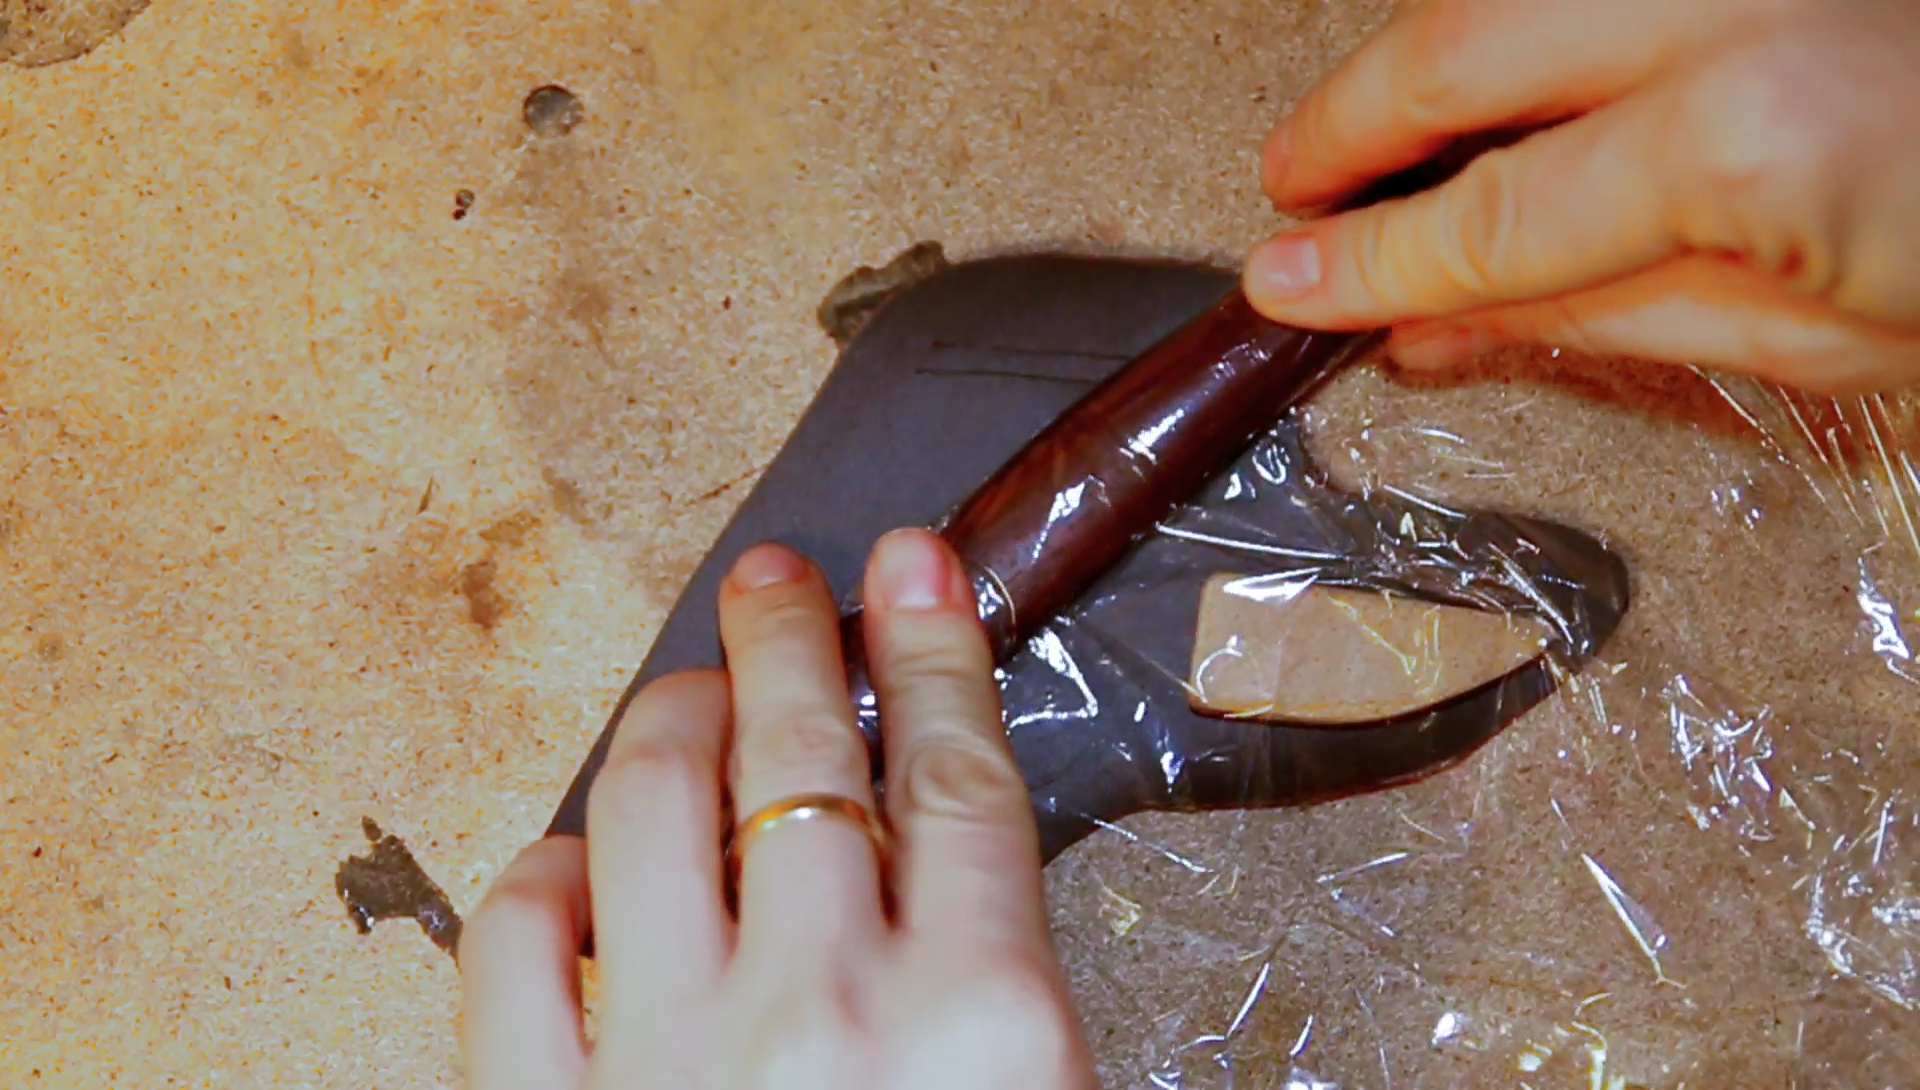 Picture of Insulating the Knife Handle